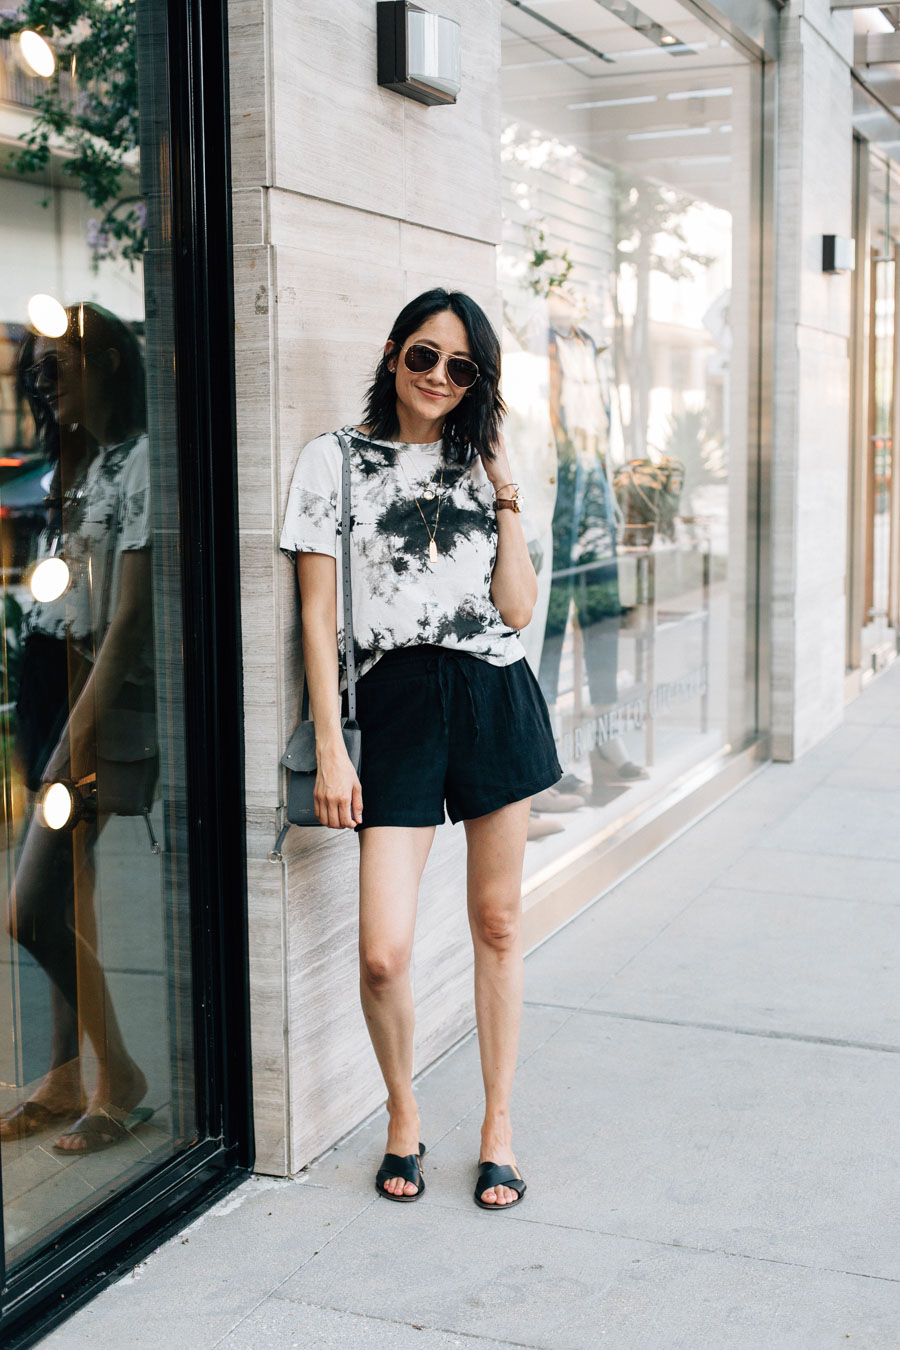 Hoe to wear the tie-dye trend as a neutral for summer | Black and white tie-dye shirt and black linen shorts.